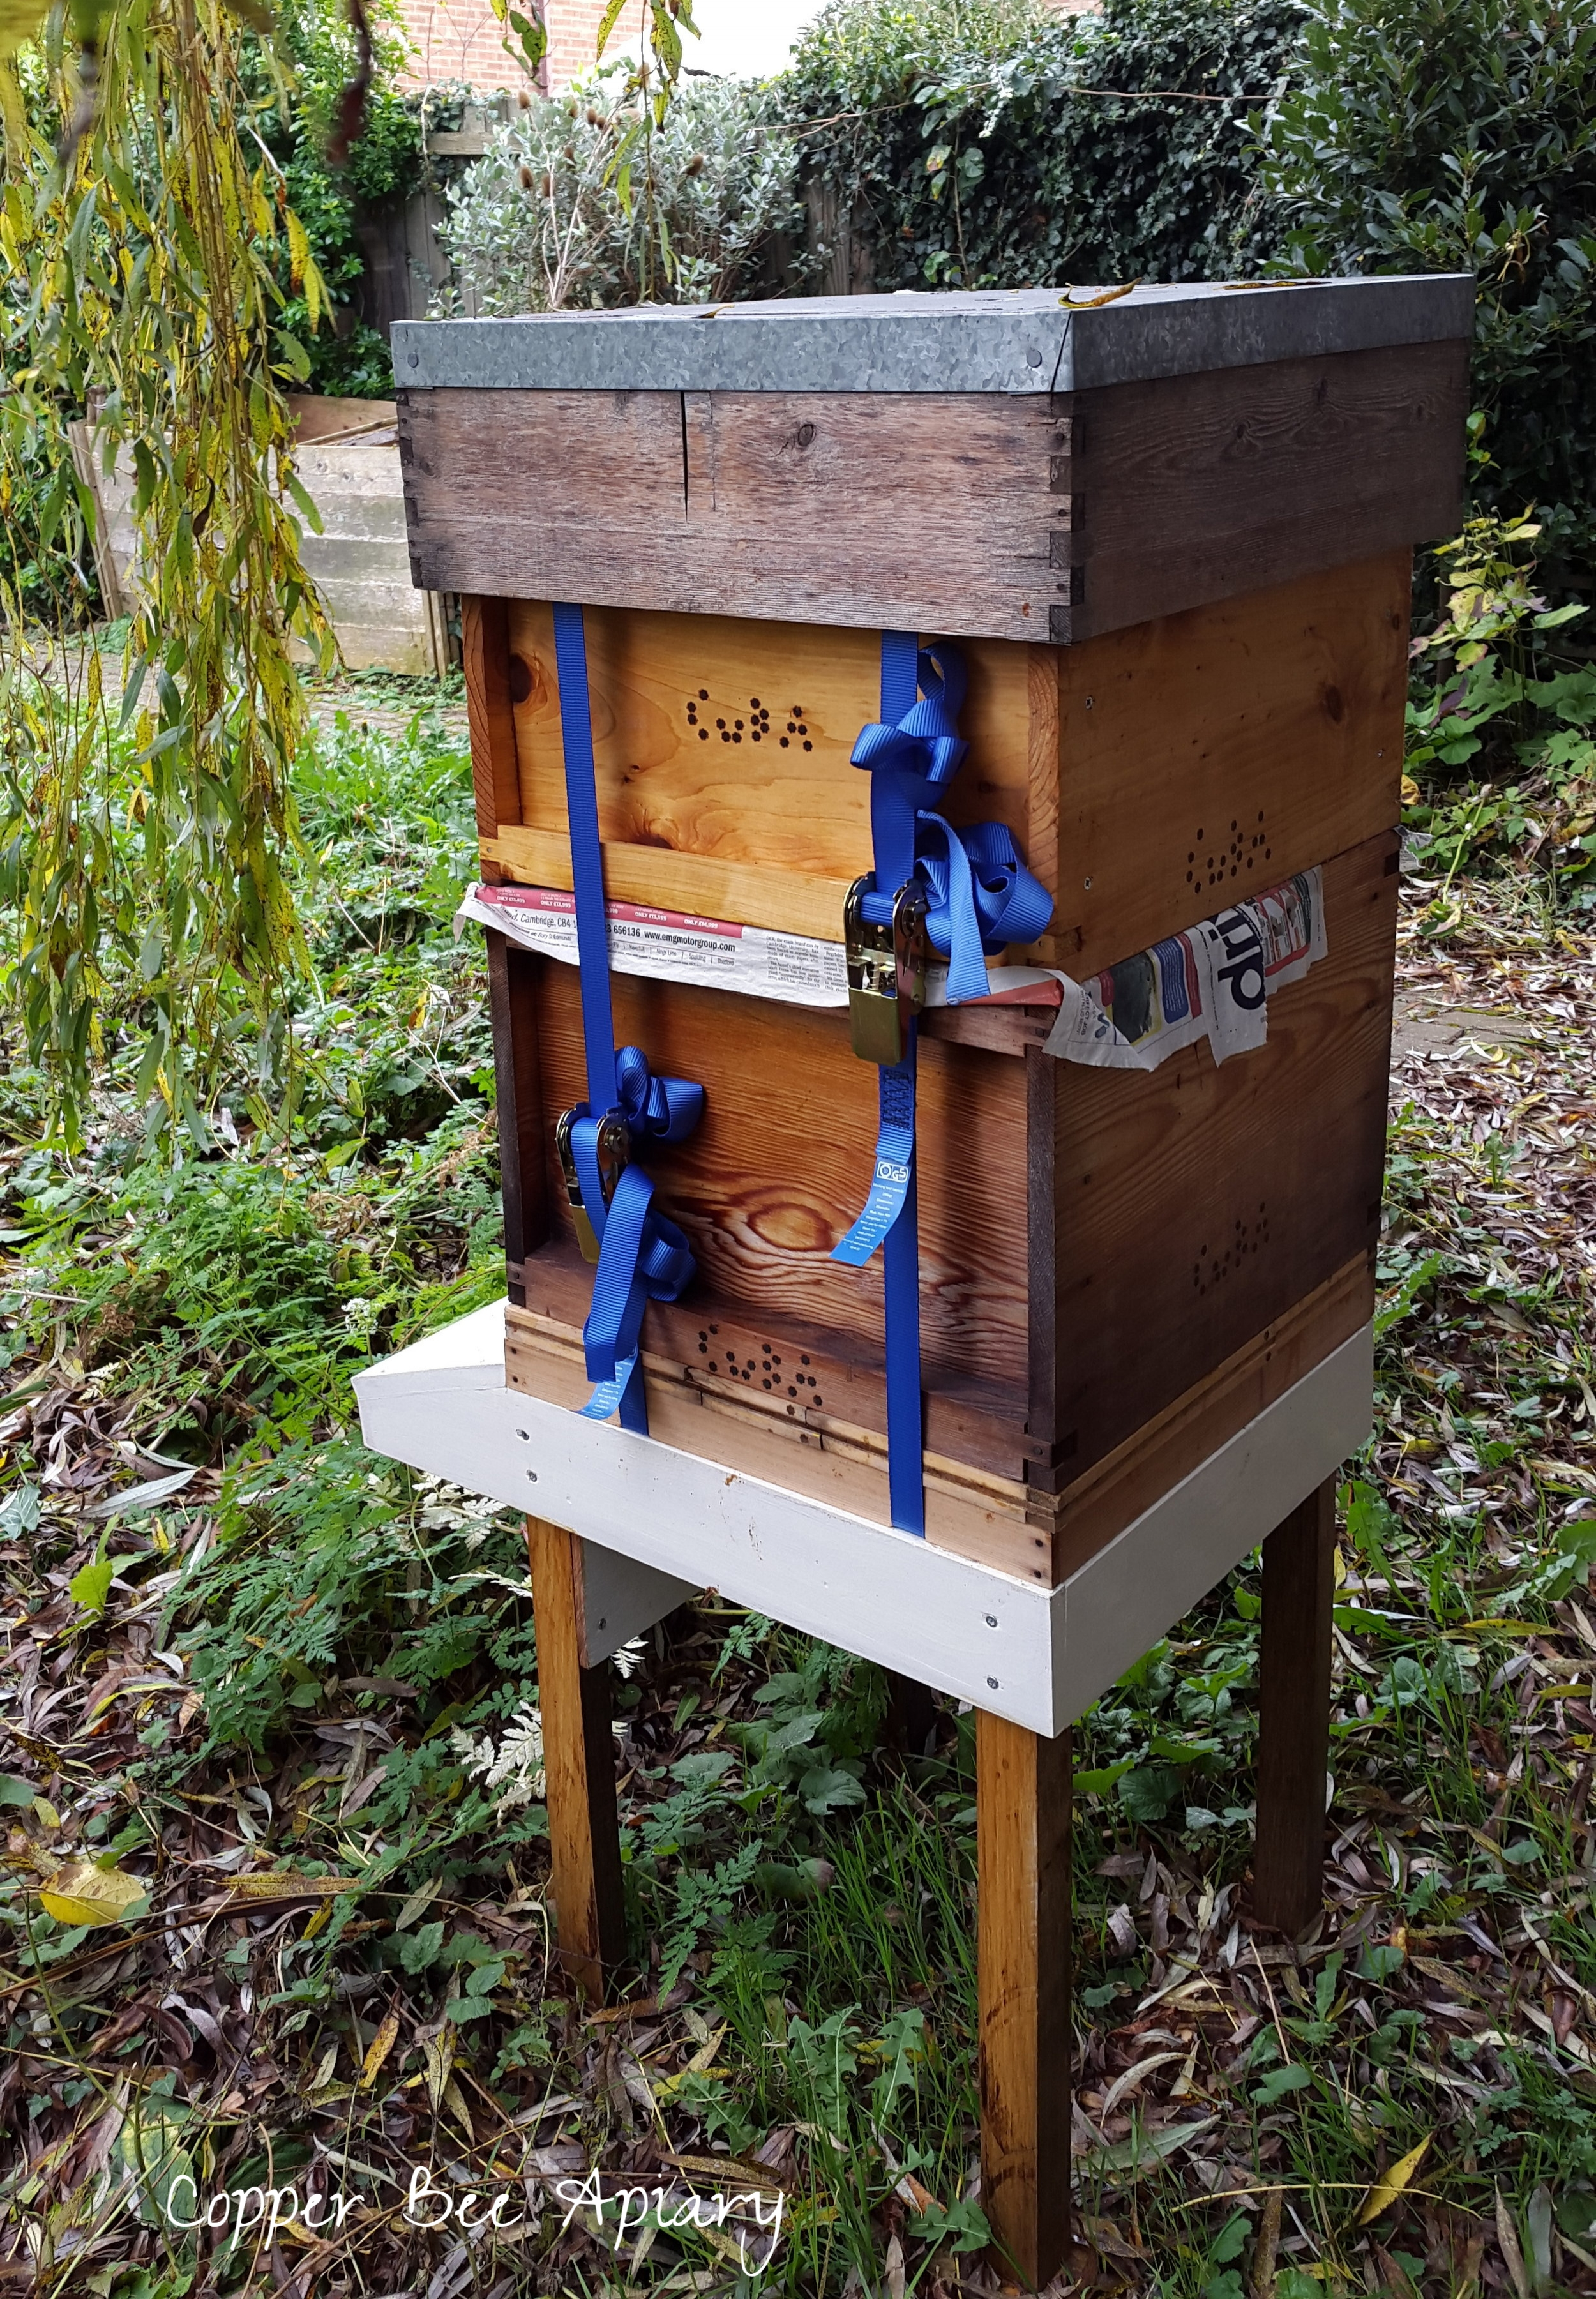 Pond Hive strapped up